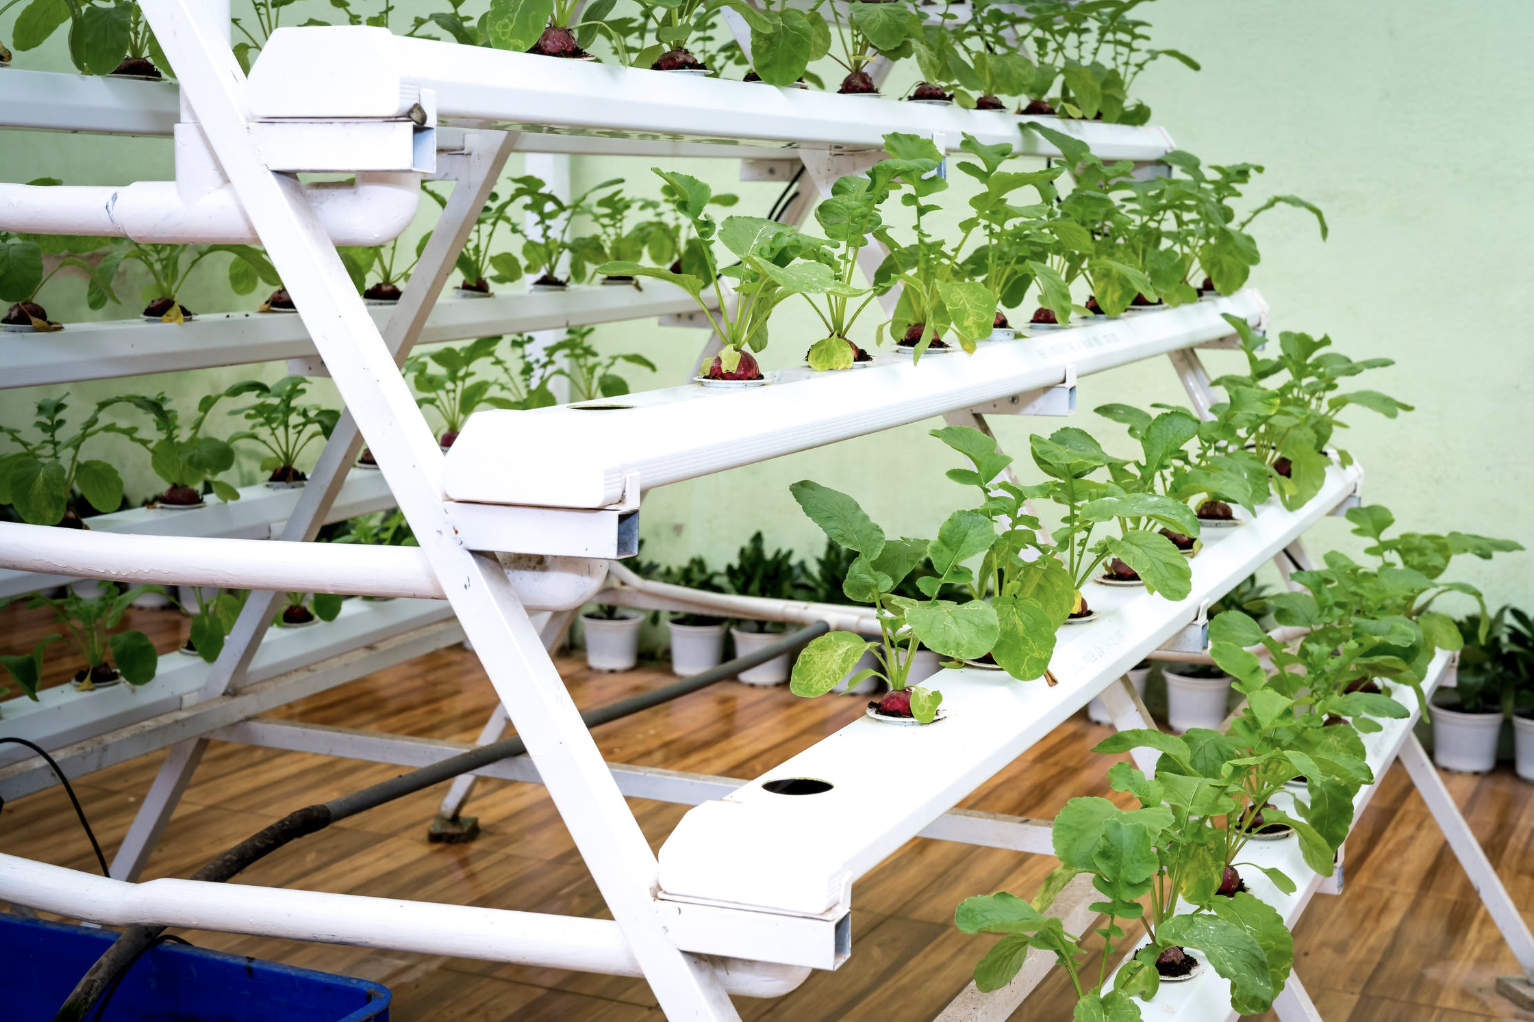 plants being grown in a novel farming system